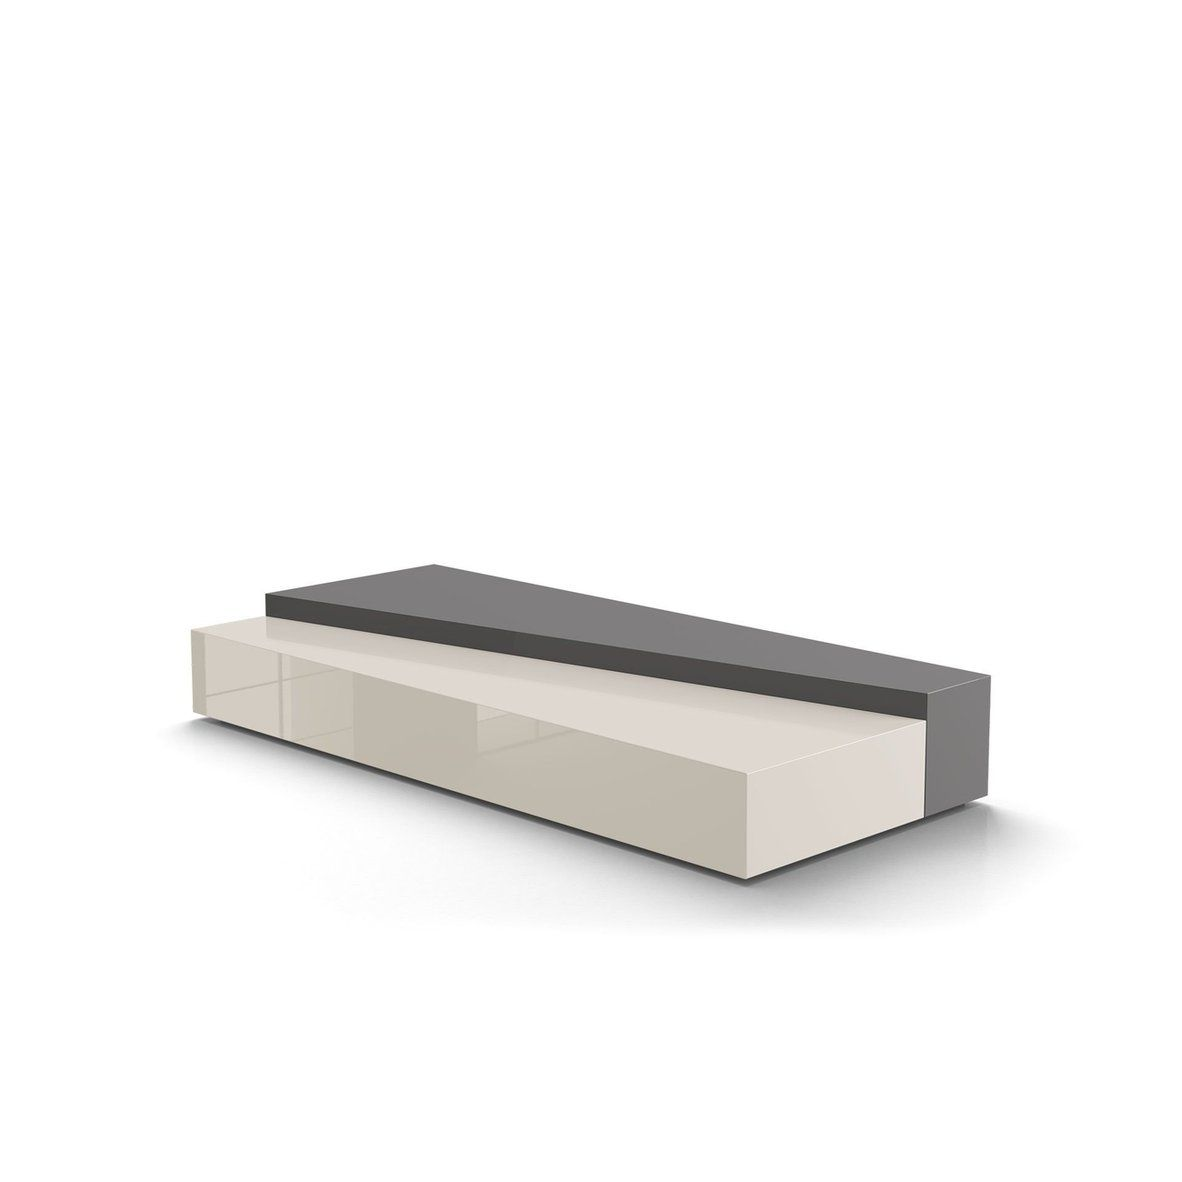 Hubert Coffee Tables France Son Coffee Table Table Center Table [ 1182 x 1182 Pixel ]